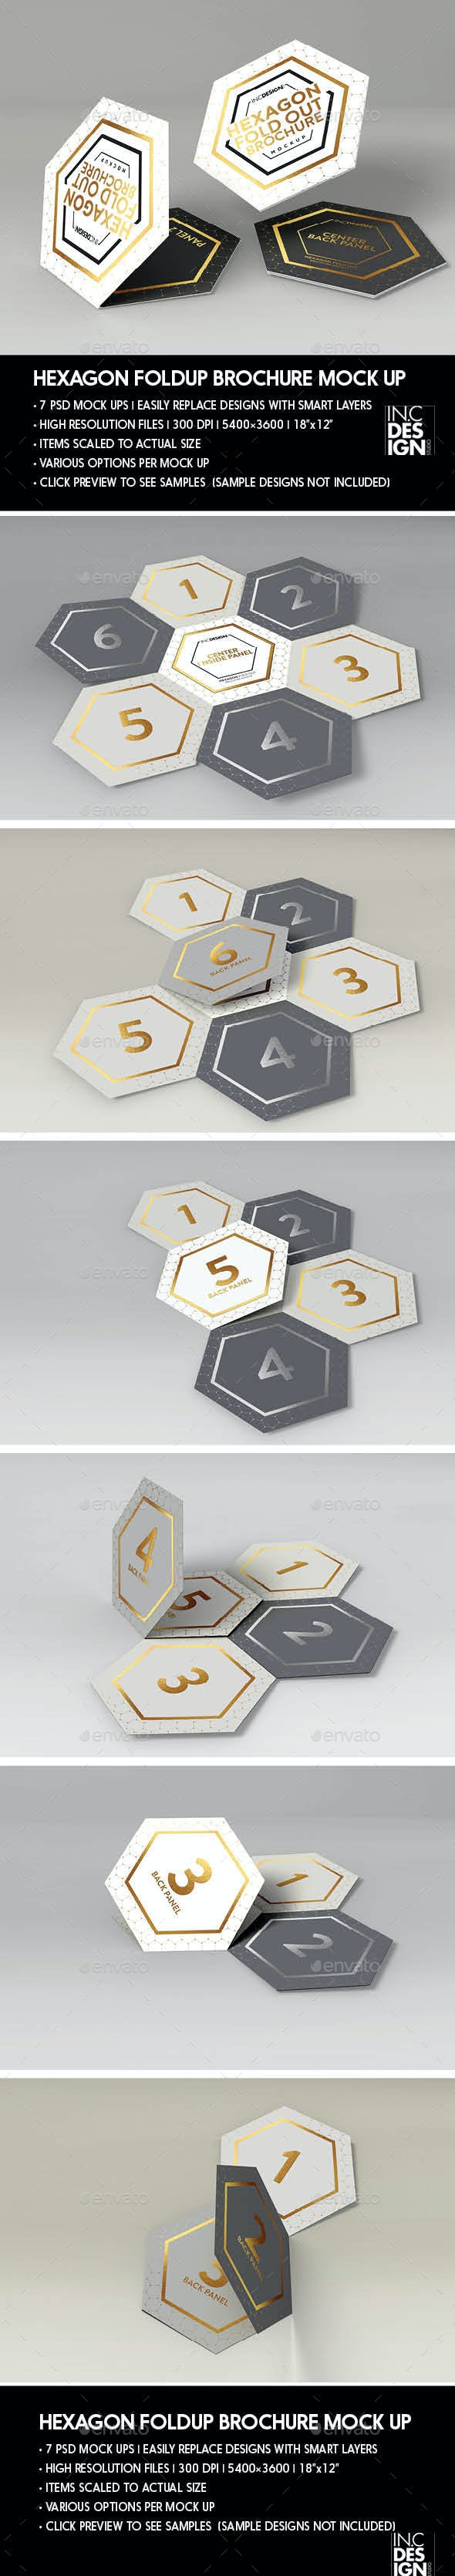 Hexagon Fold Out Style Brochure - Product Mock-Ups Graphics